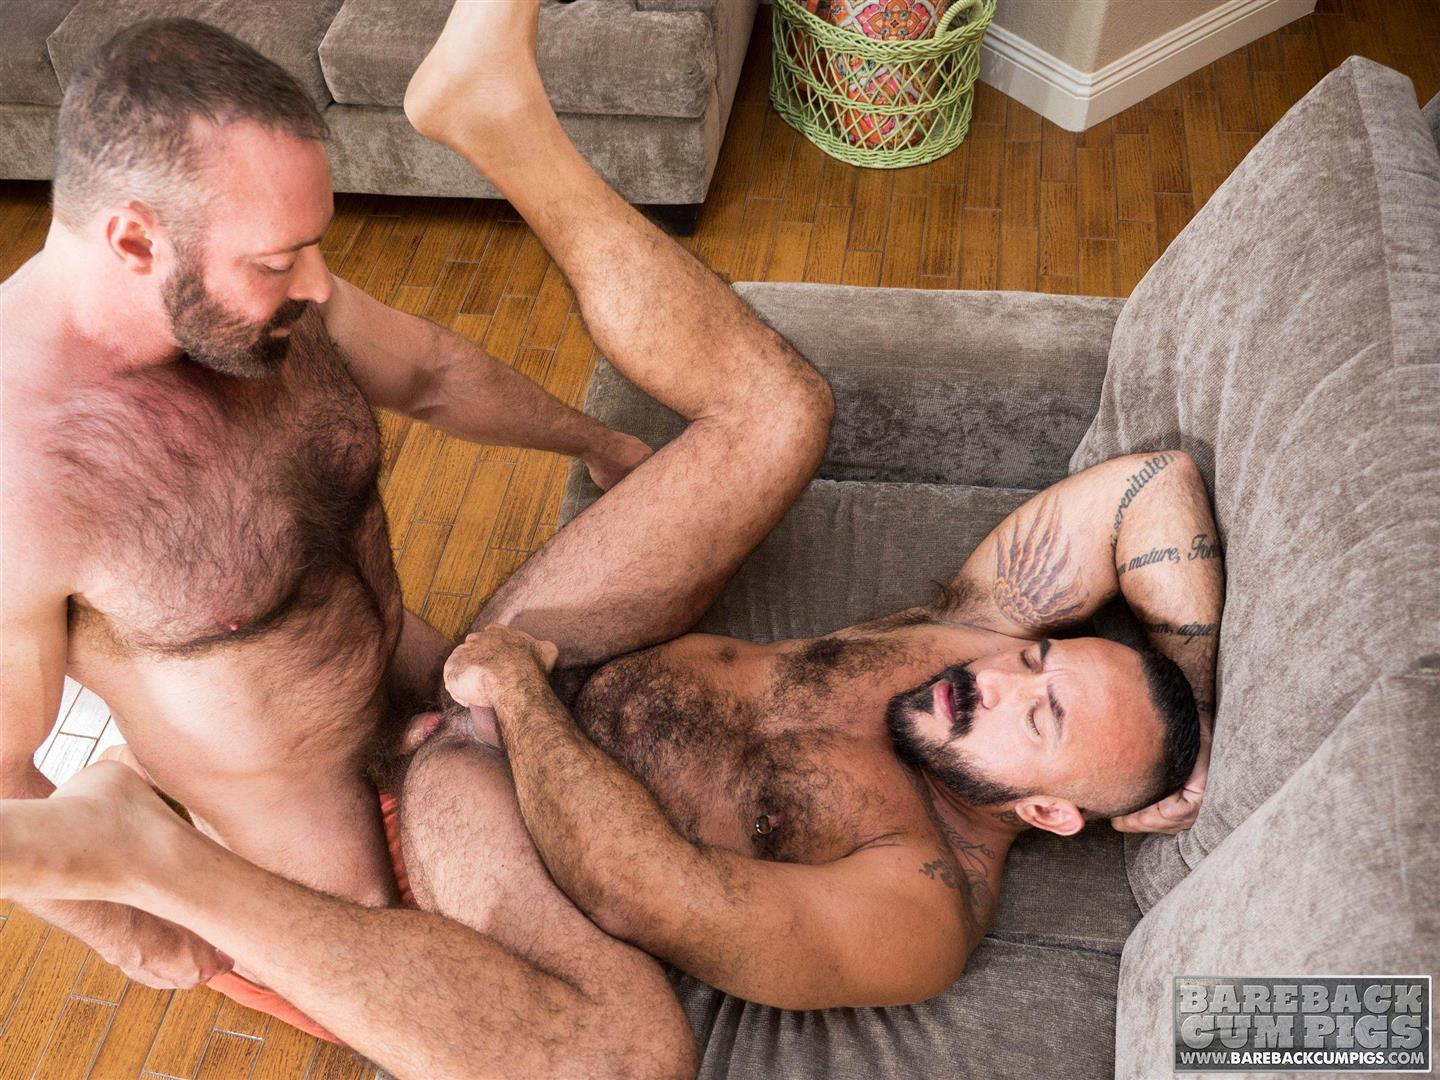 Aggressive gay hot daddy sex with sexy 1